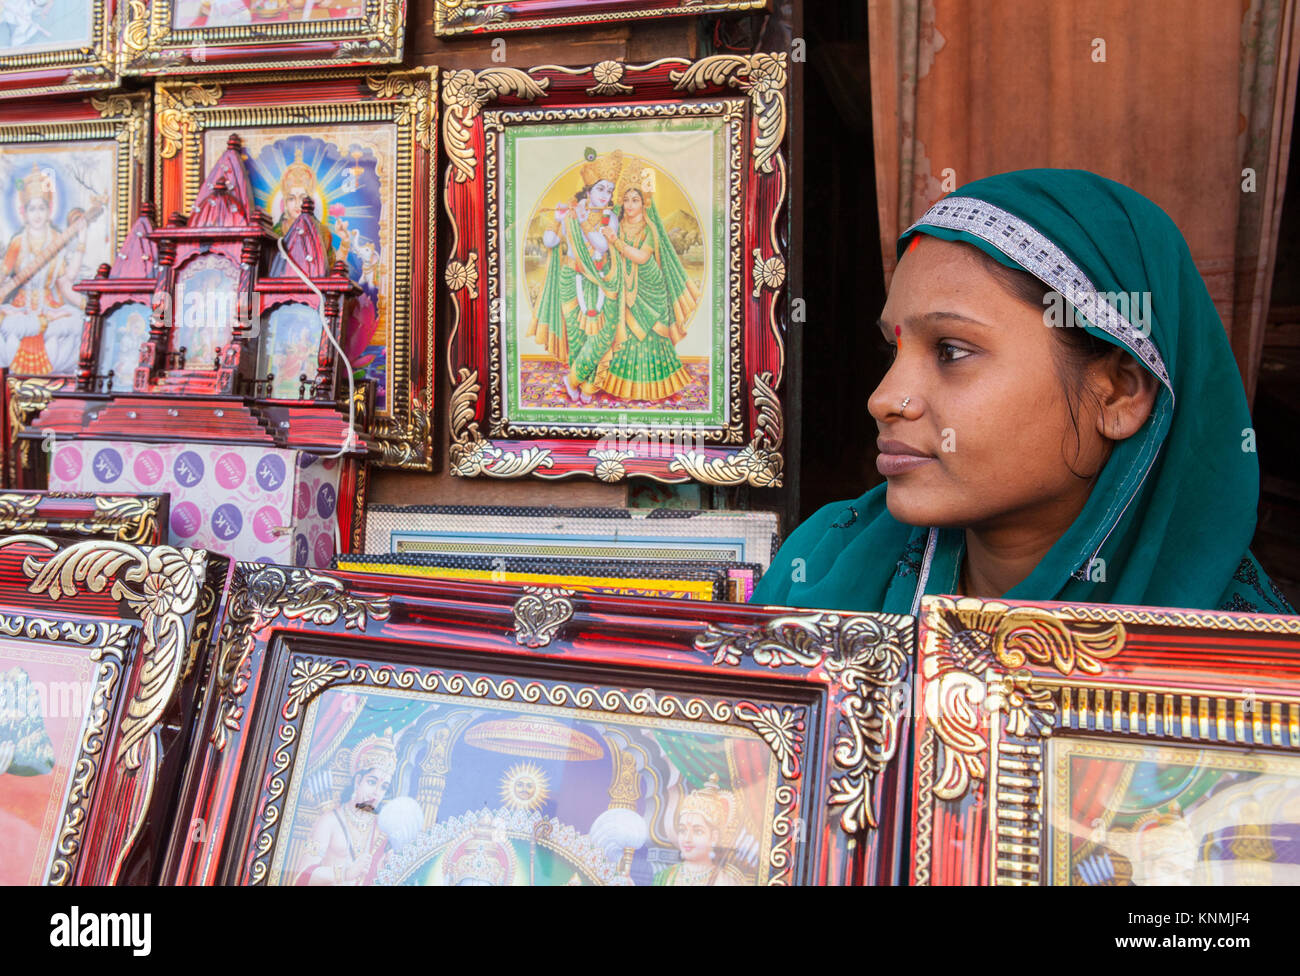 Portrait of a woman selling images of Hindu gods at street stall in the bazaar at Ayodhya, India - Stock Image